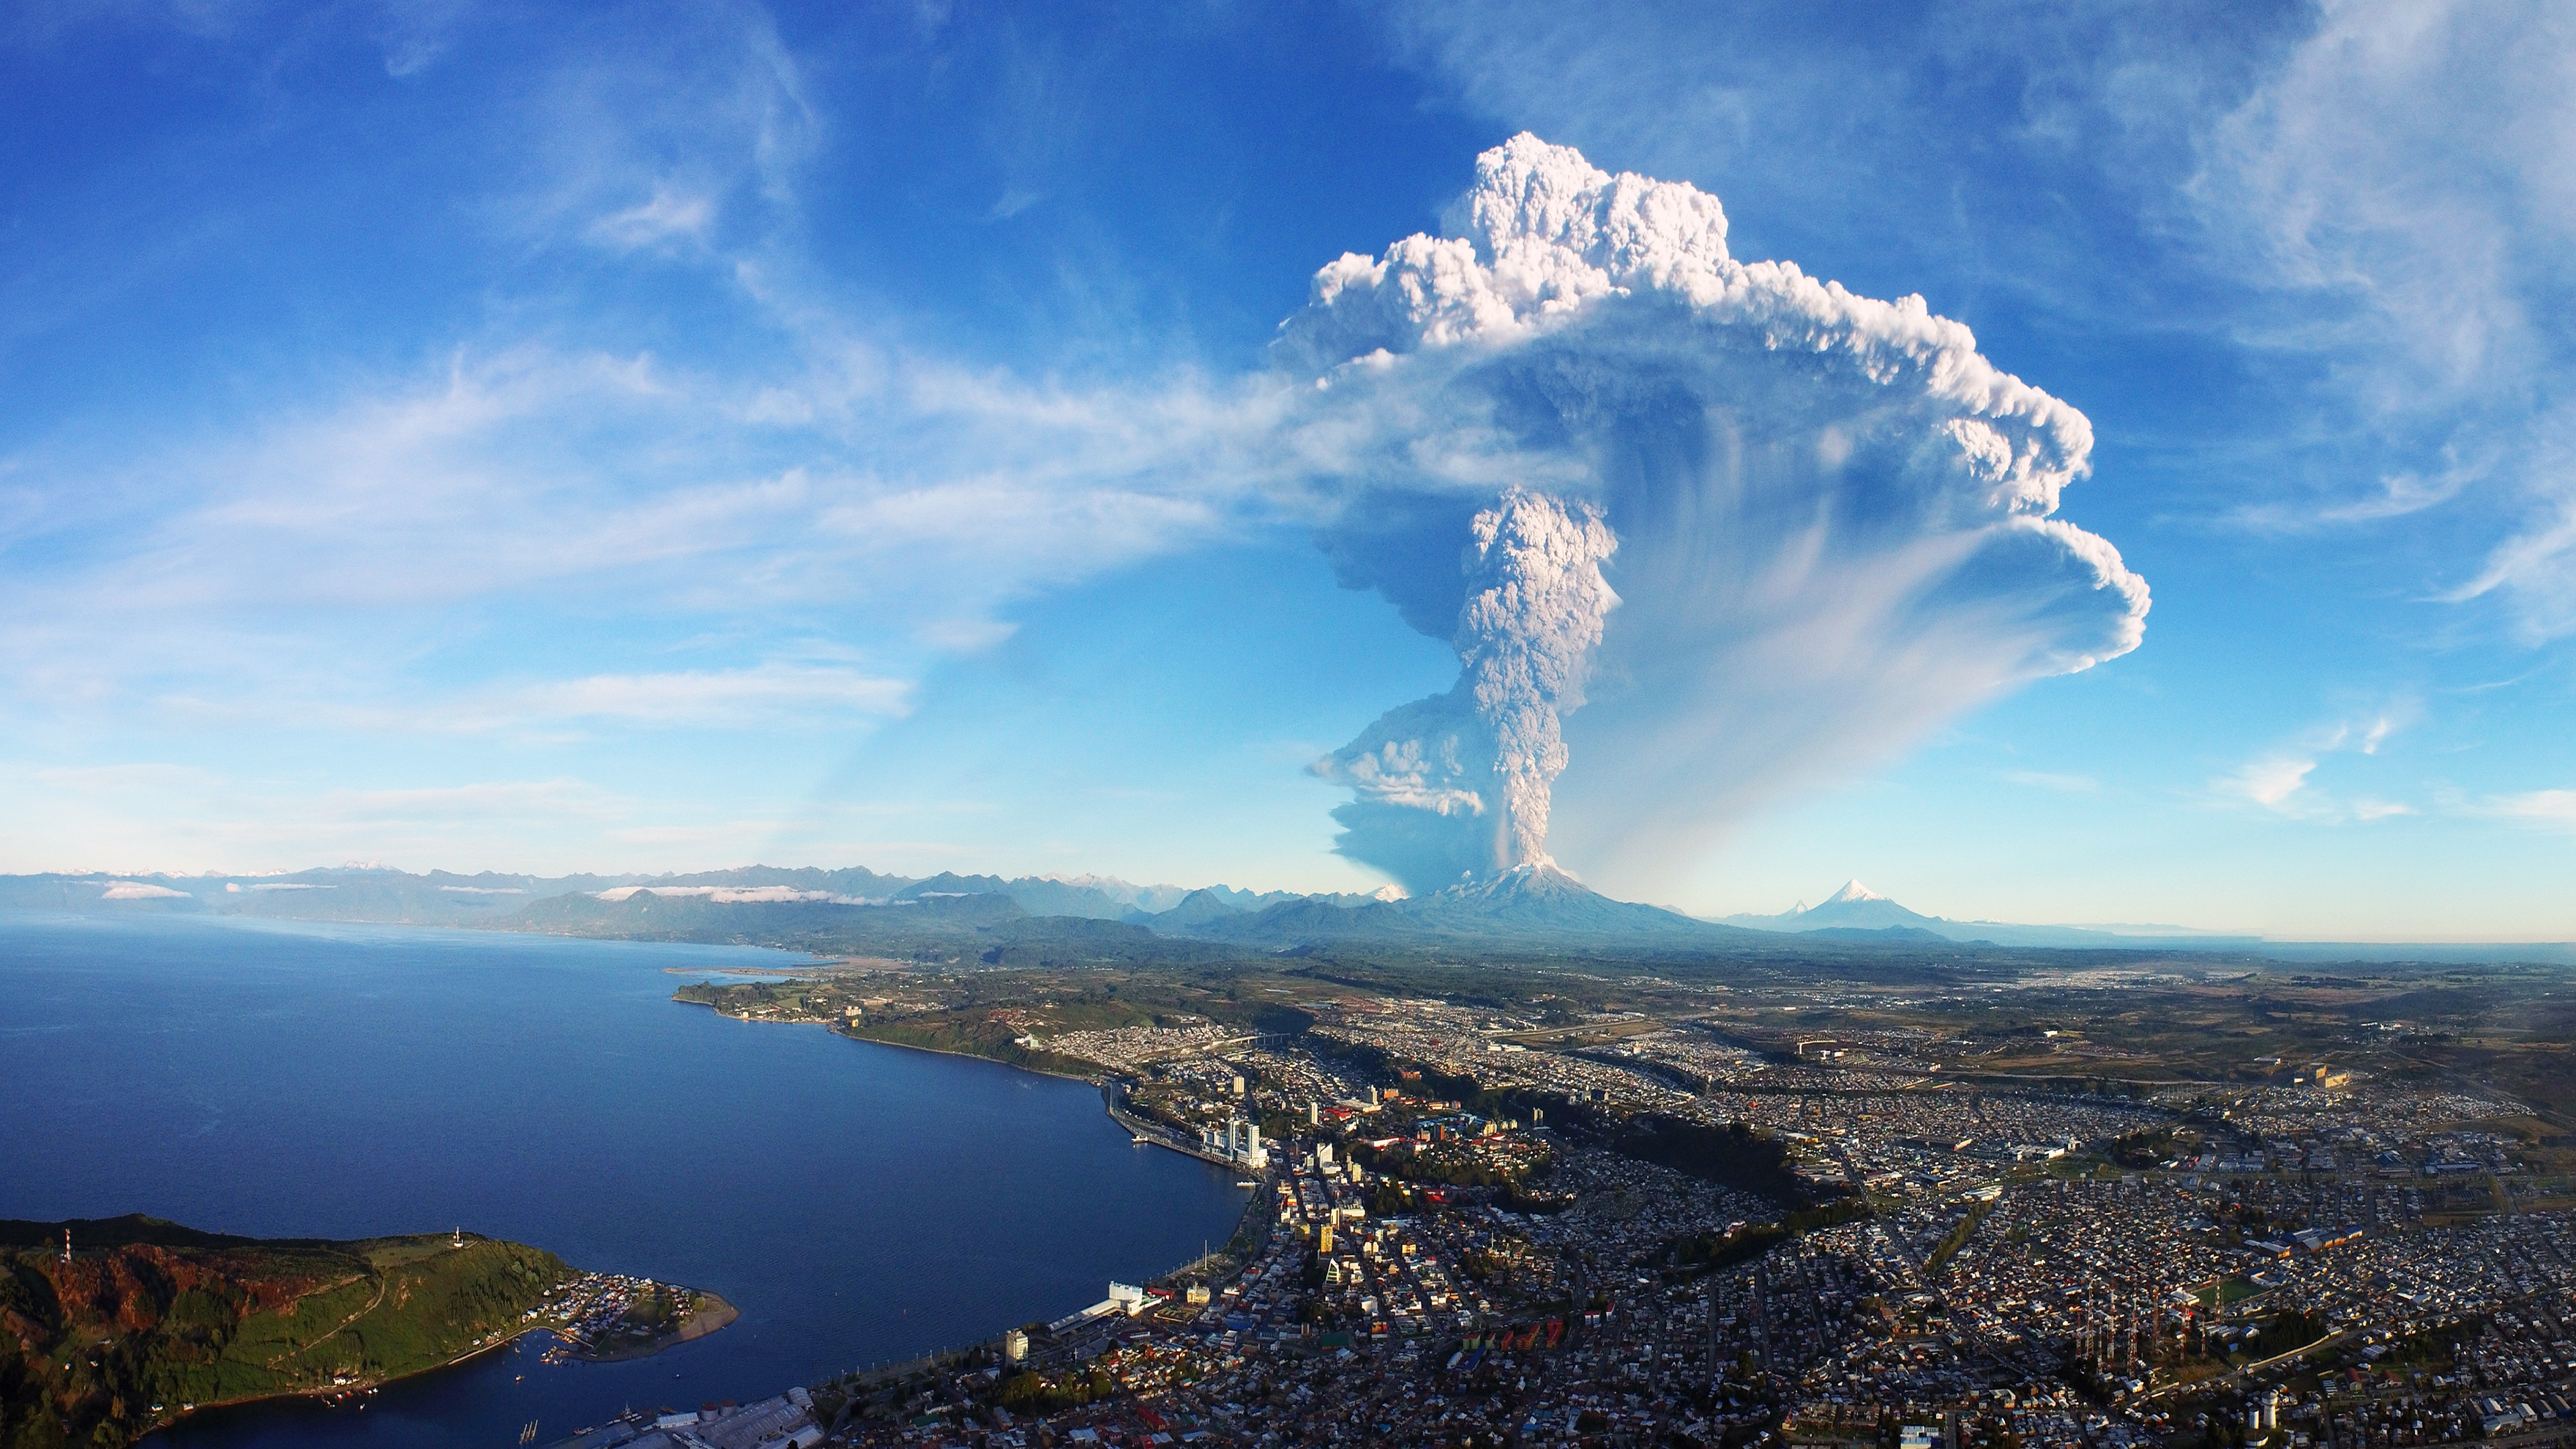 Calbuco Volcano Eruption Chile 4K Ultra HD Desktop